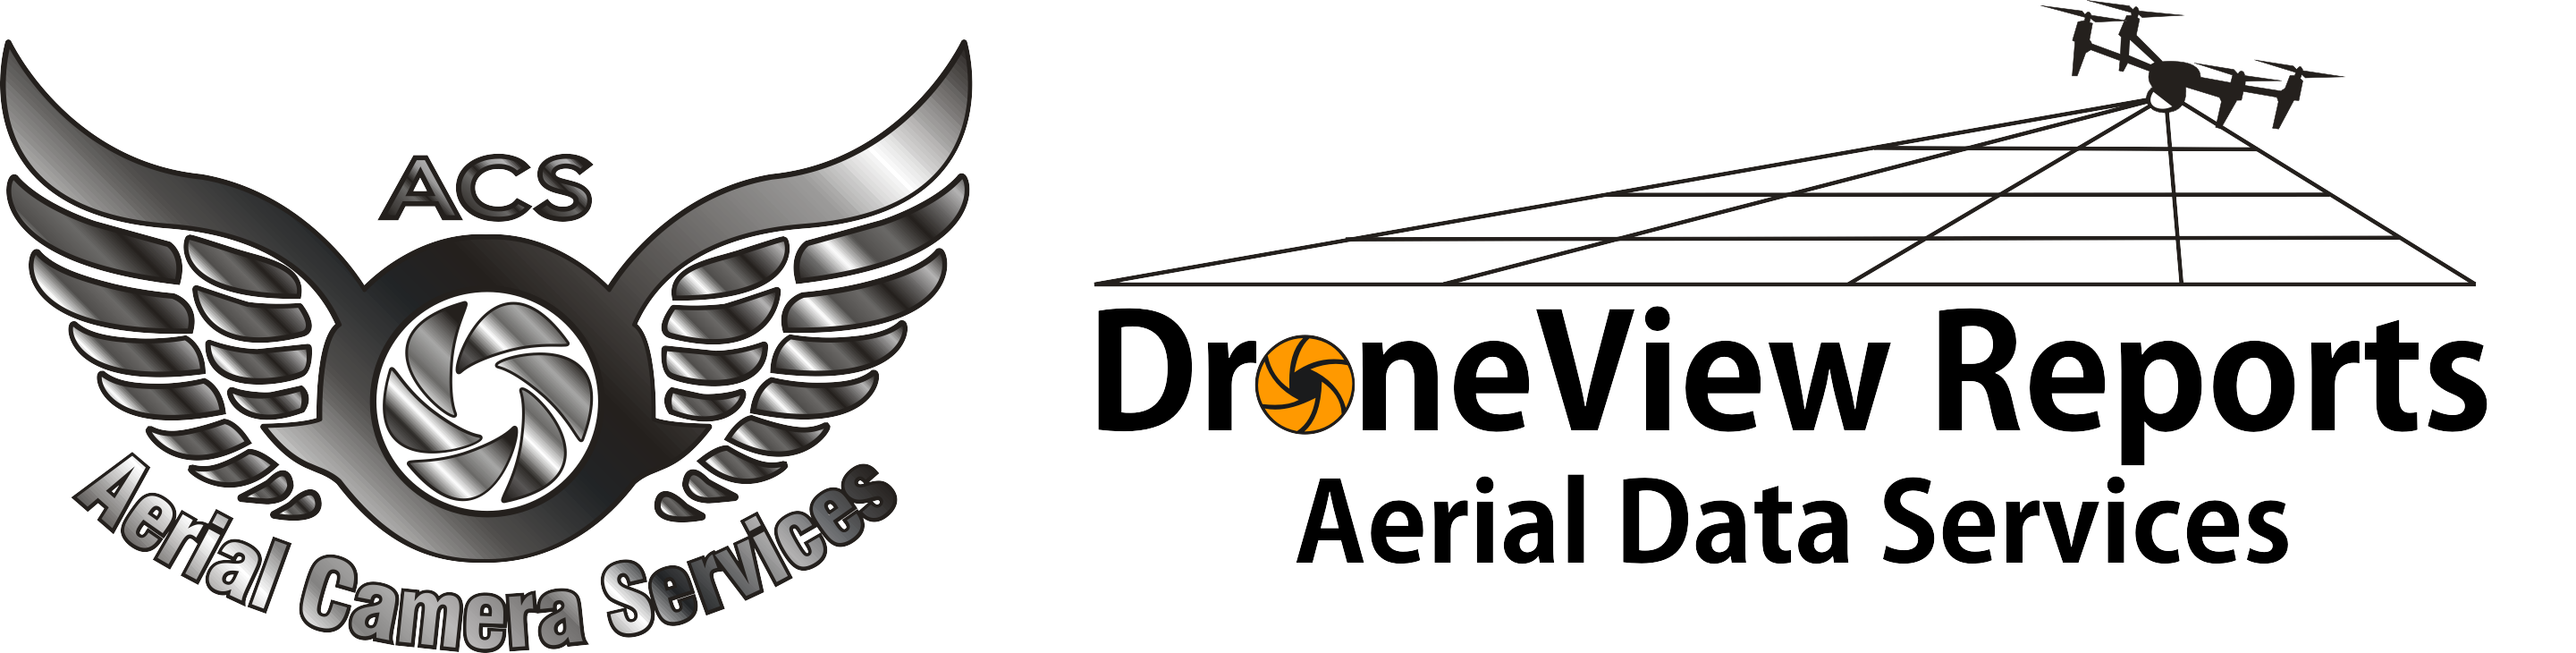 Aerial Camera Services / Drone View Reports Logo